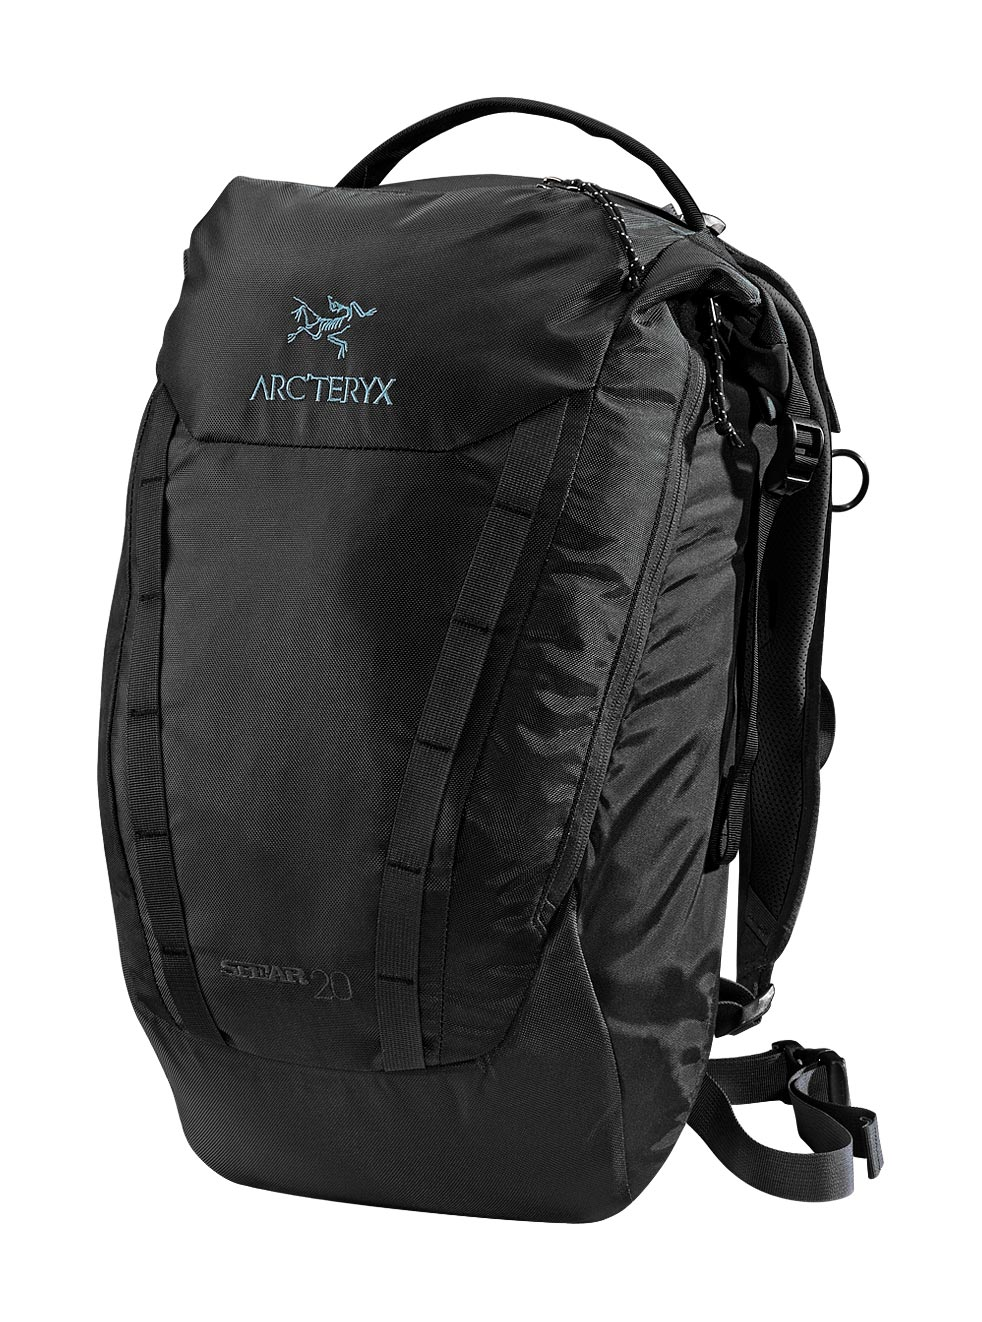 Arcteryx Black/Black Spear 20